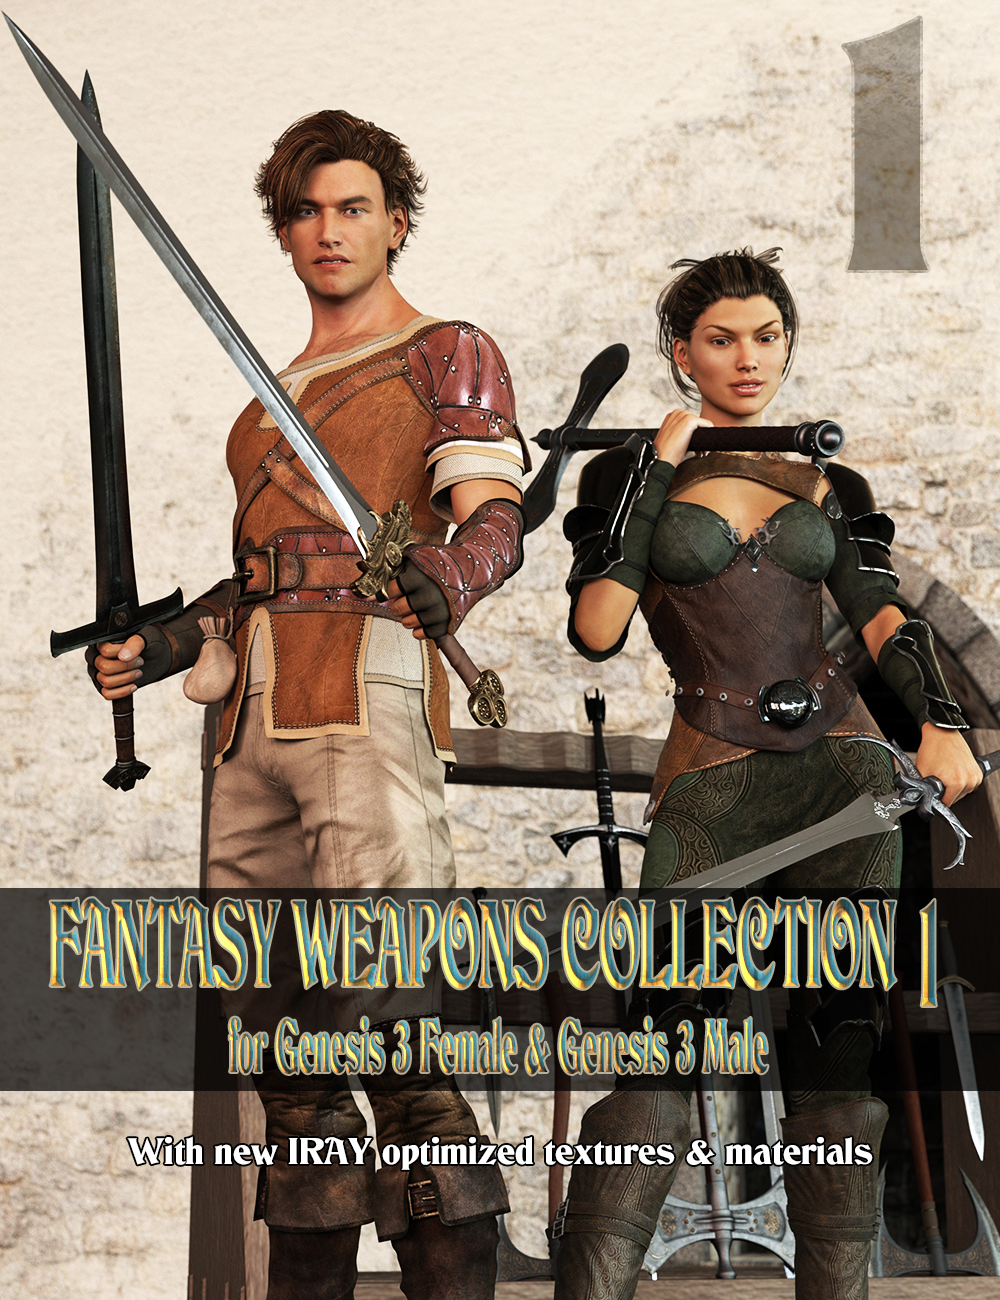 Fantasy Weapons Collection by: Porsimo, 3D Models by Daz 3D